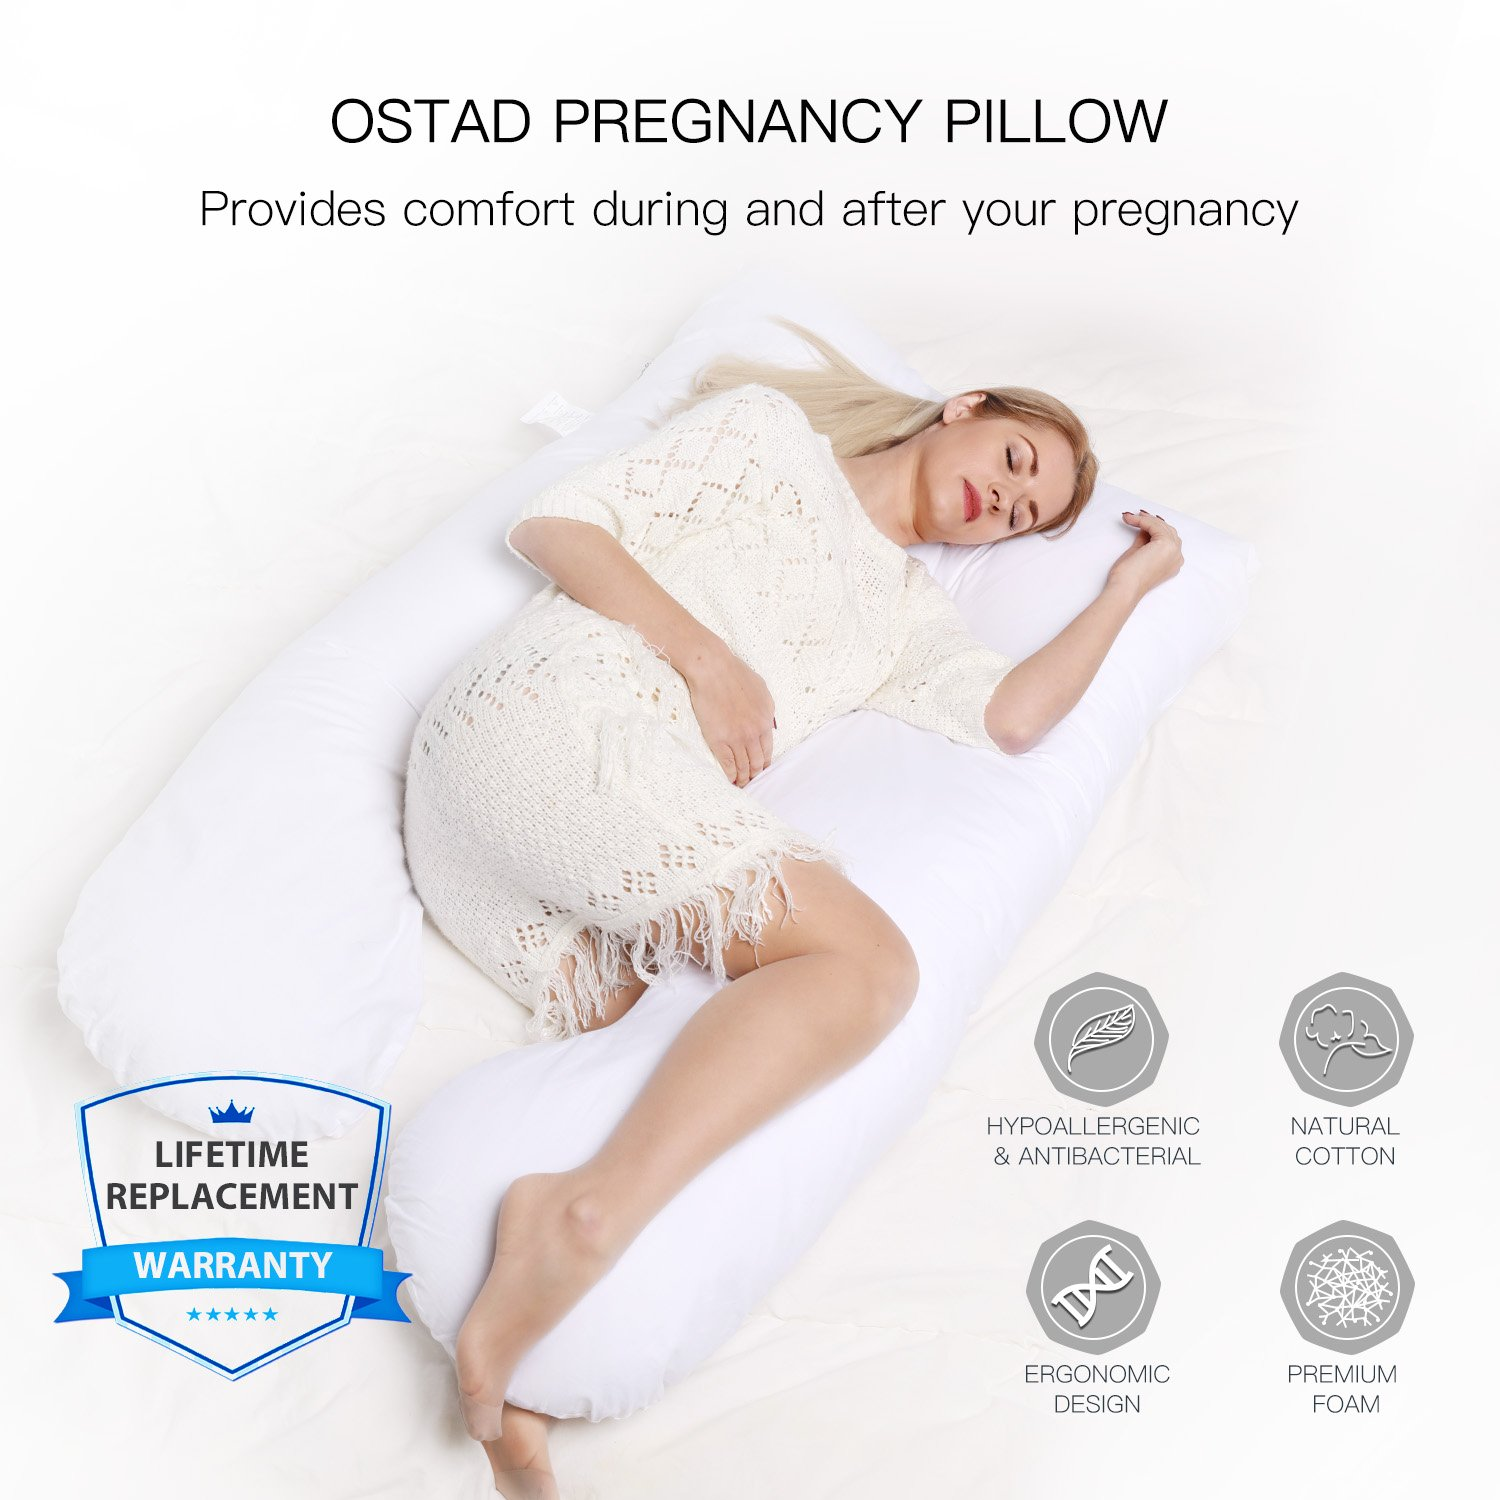 Pregnancy Pillow - U-Shaped Body Pillow for Maternity & Nursing | Luxurious Full Support for Resting or Sleeping on Your Back, Side or Any Natural Position | Relief for Hip & Back Pain, Sciatica